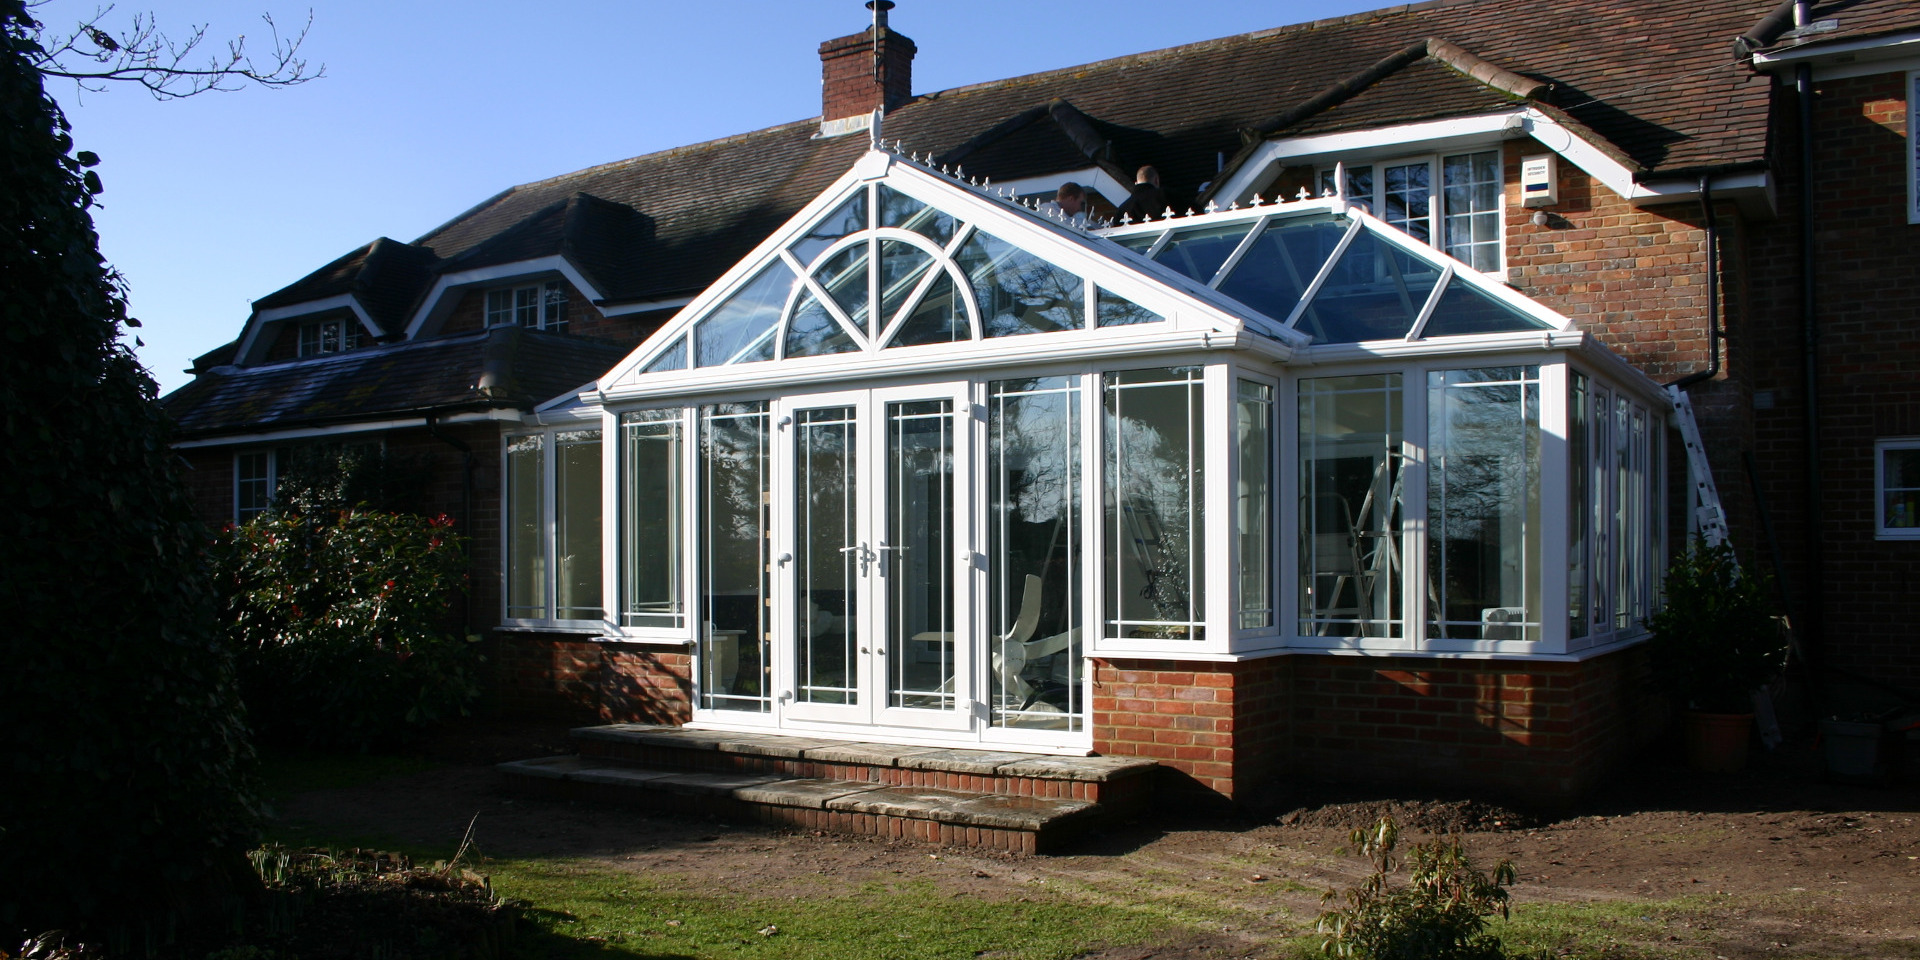 Diy conservatory kits usa do it your self for Design agency usa